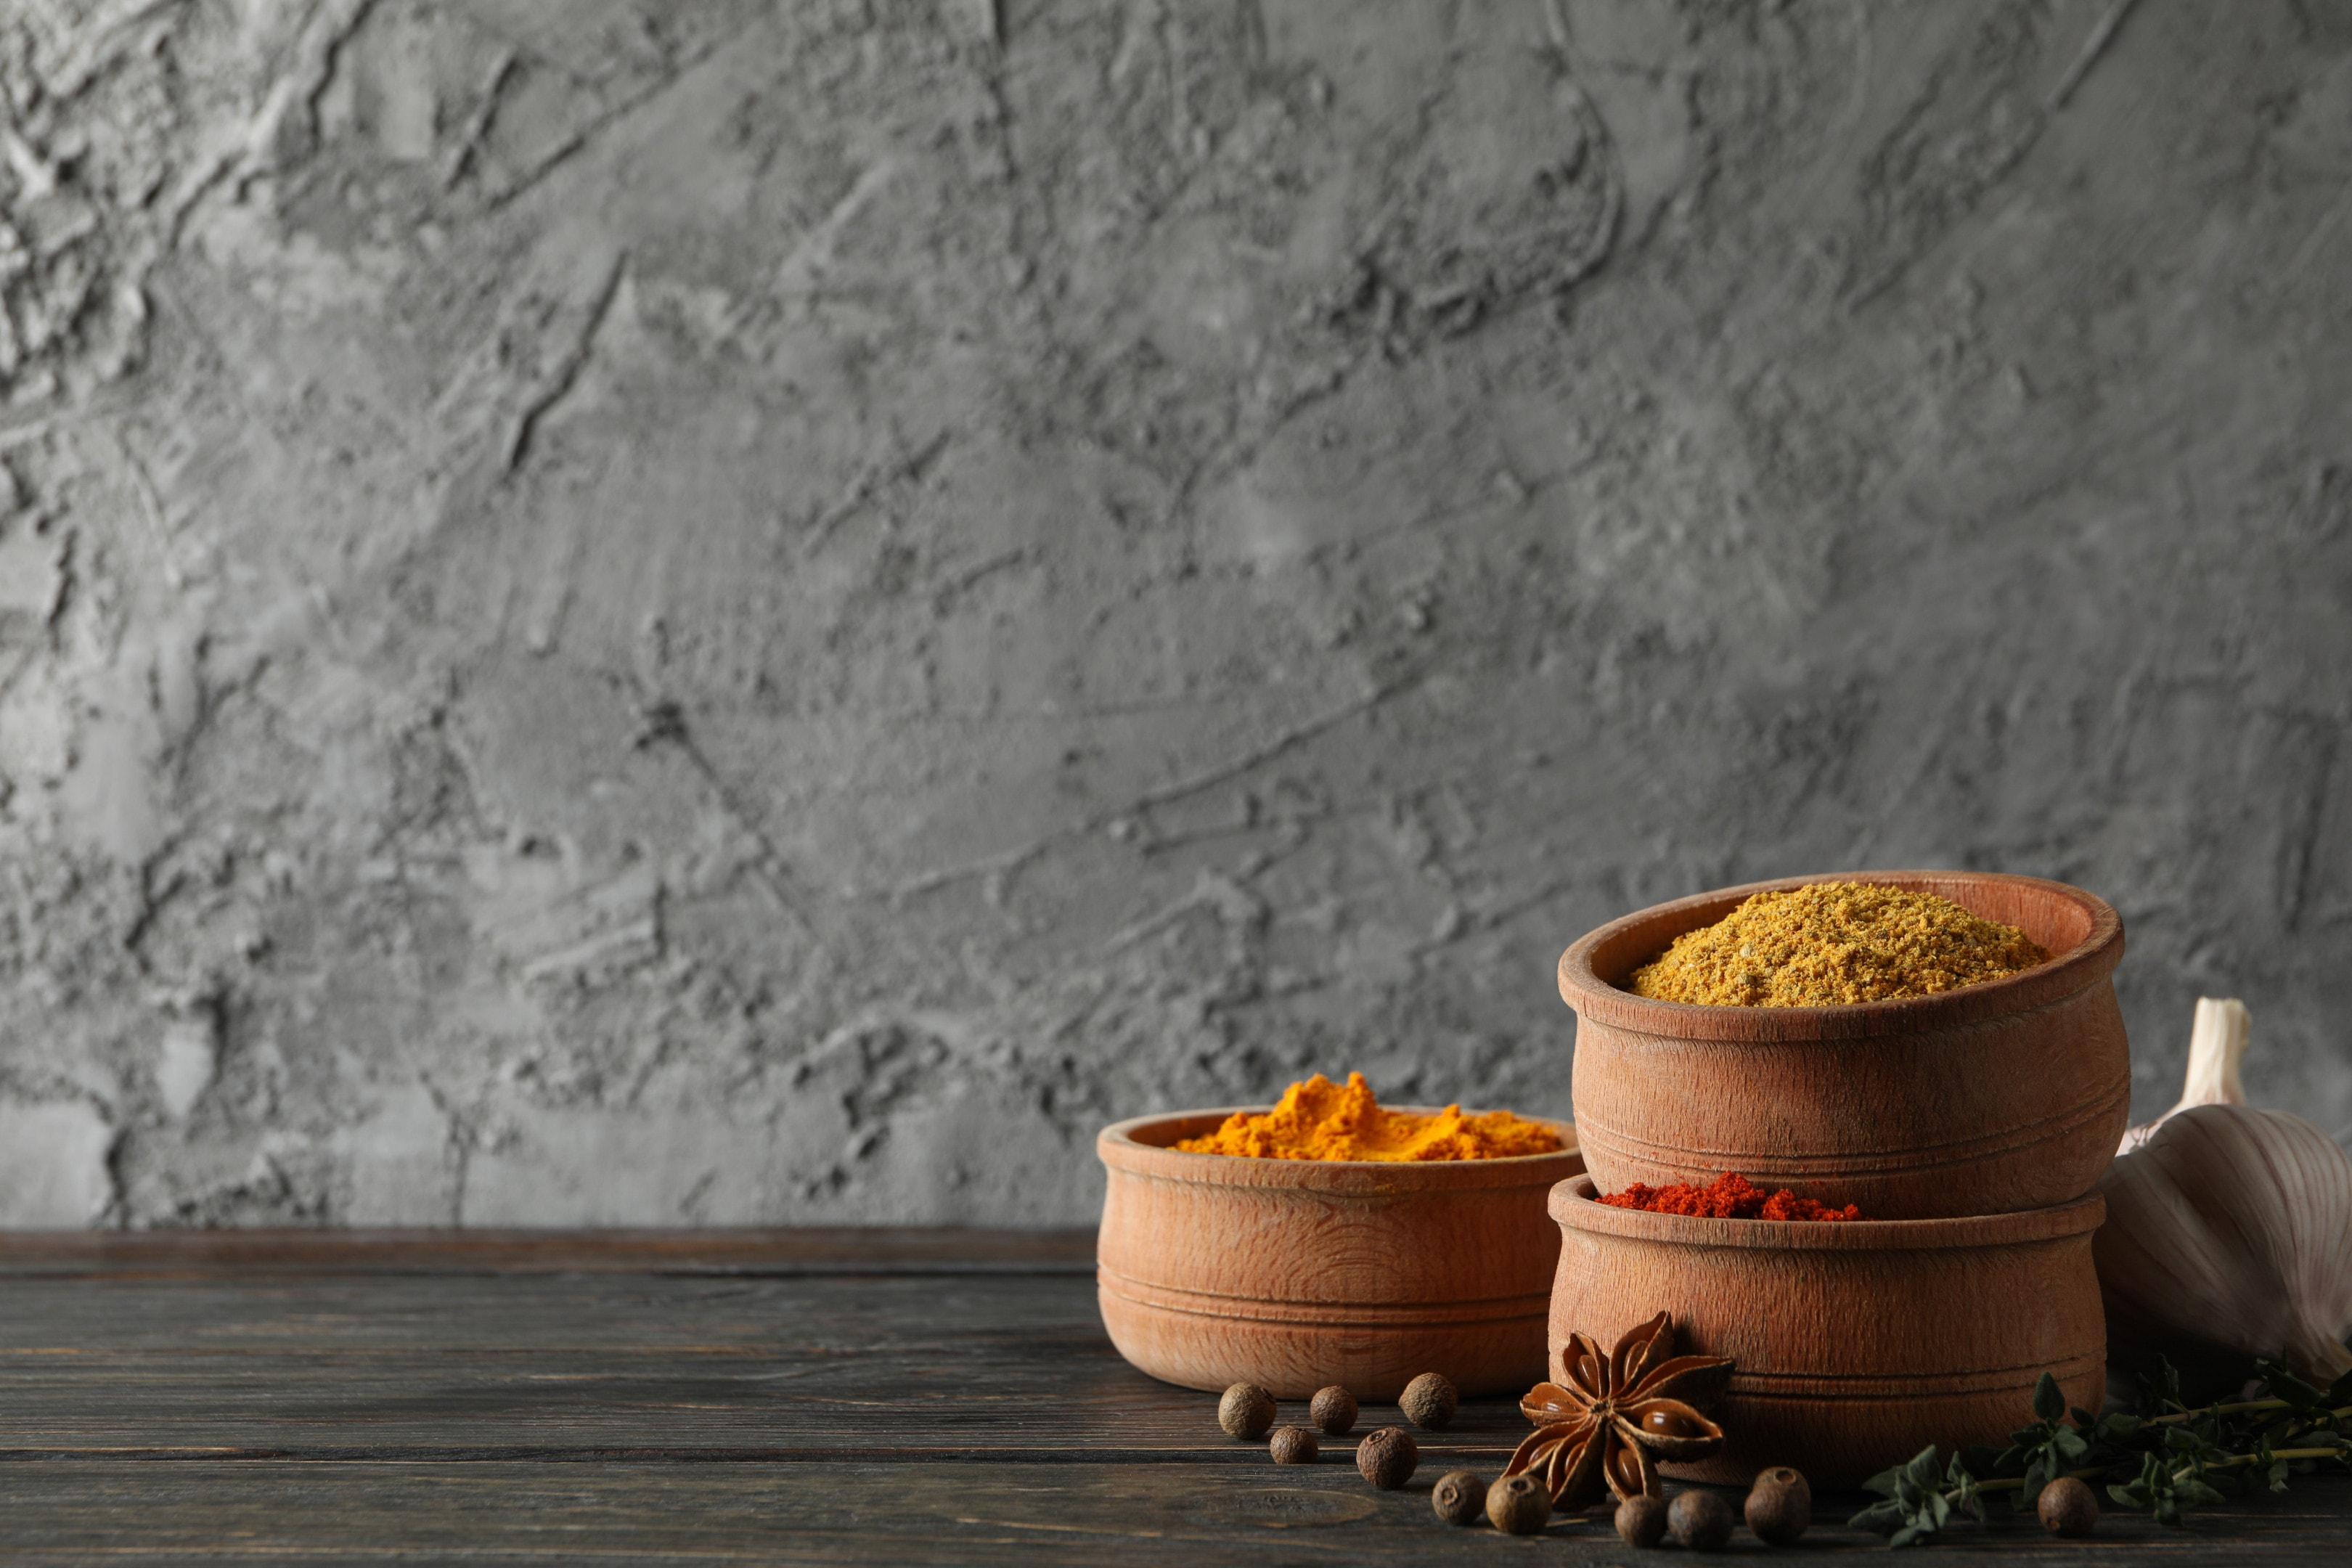 Bowls with different masala curry powders on wooden background